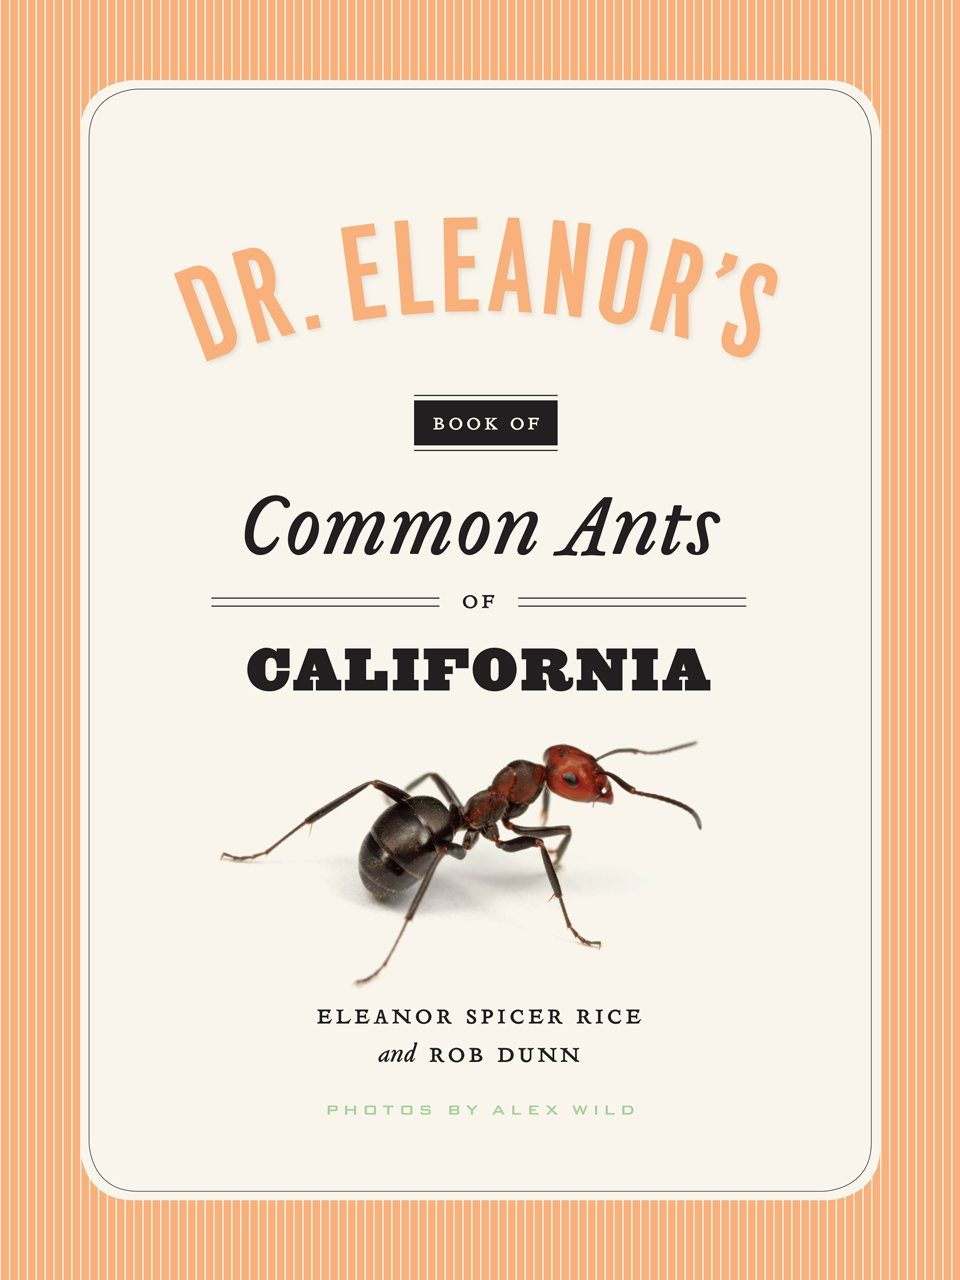 Dr. Eleanor's Book of Common Ants of California